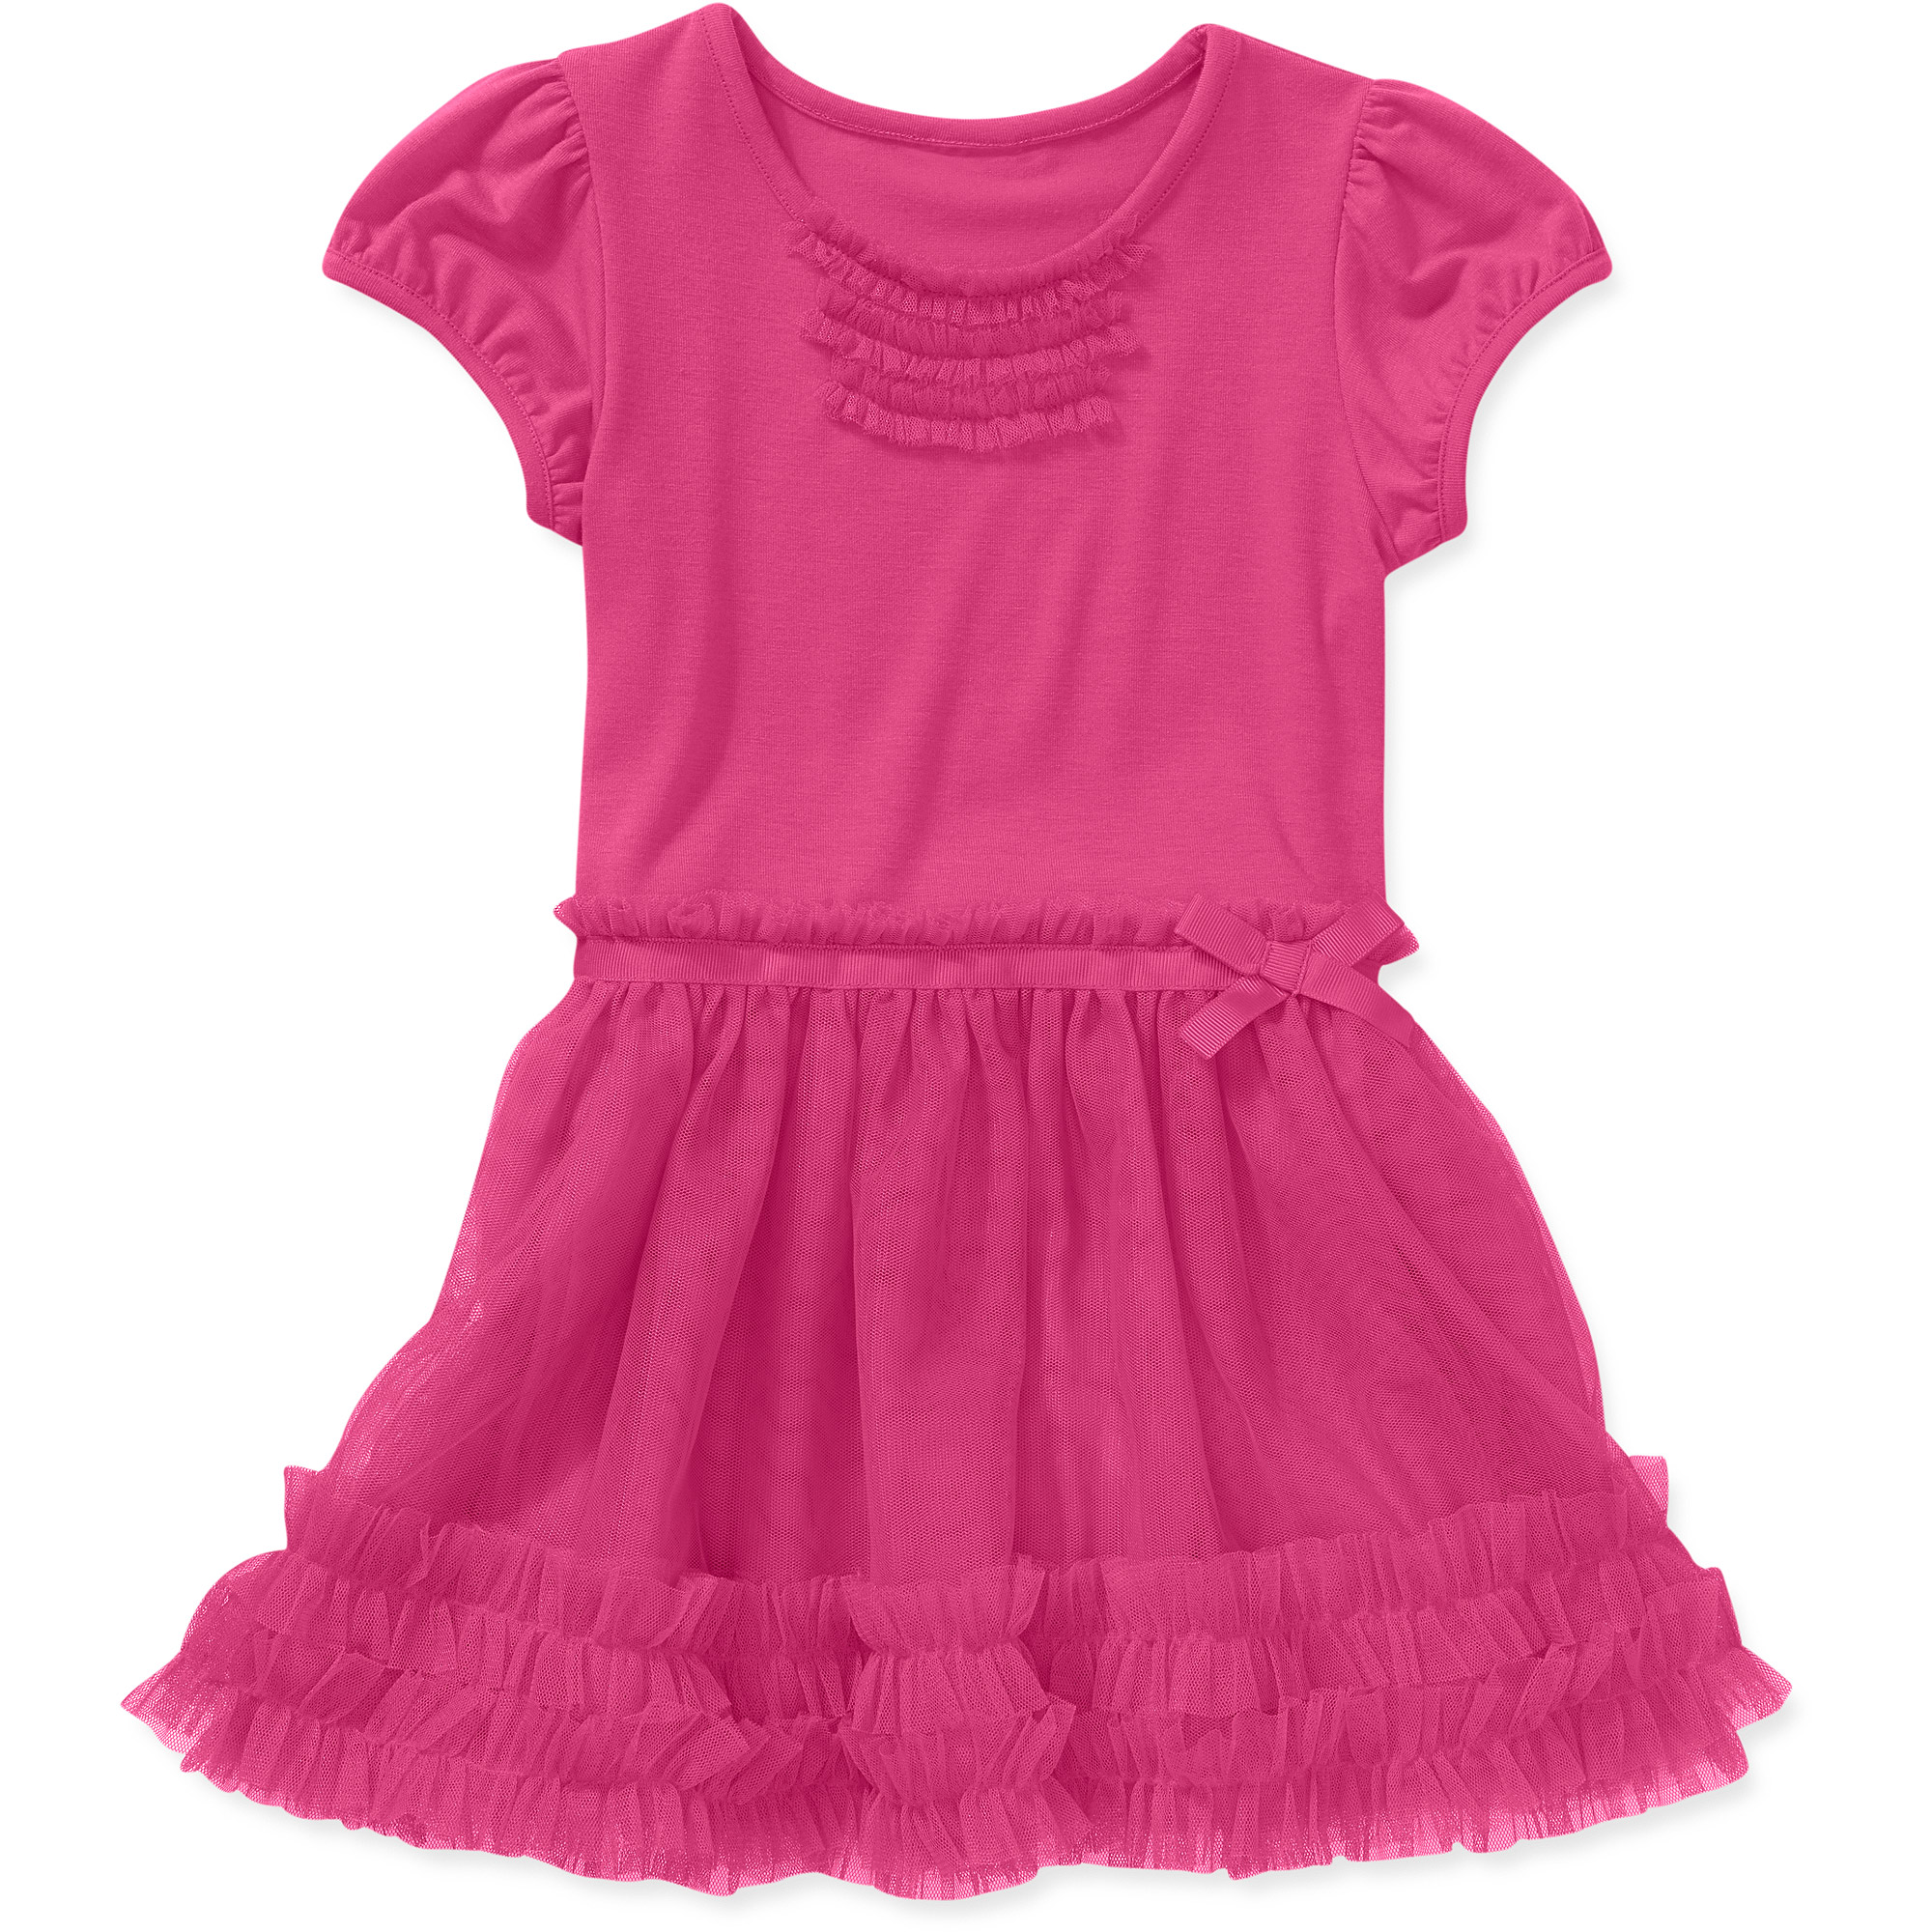 Healthtex Baby Toddler Girl Knit and Tulle Dress